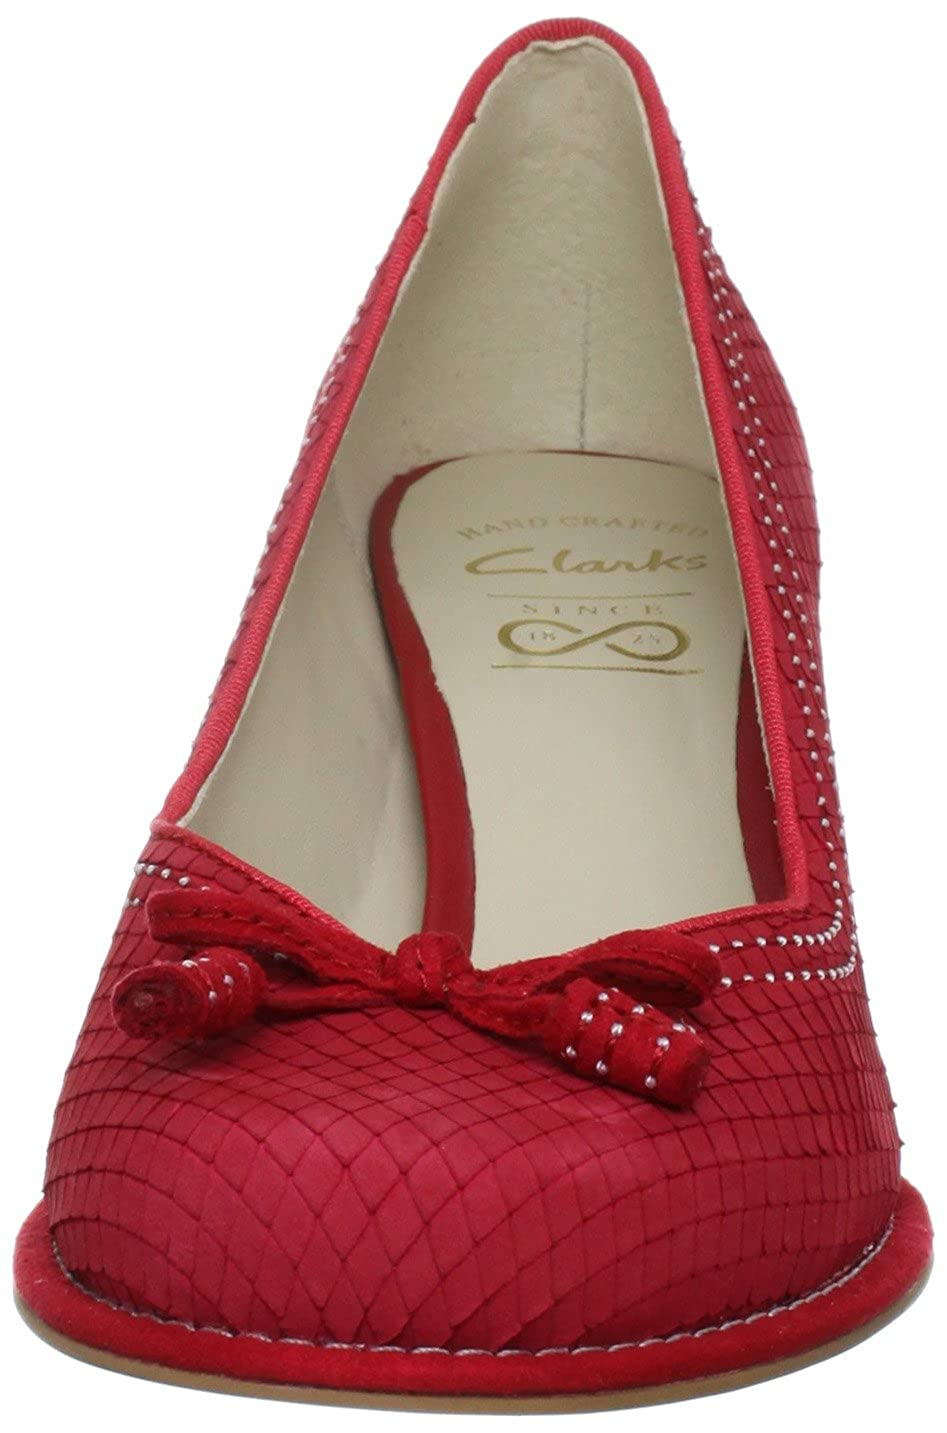 Clarks Bombay Bombay Bombay Lights 20354376 Damen Pumps 908f43